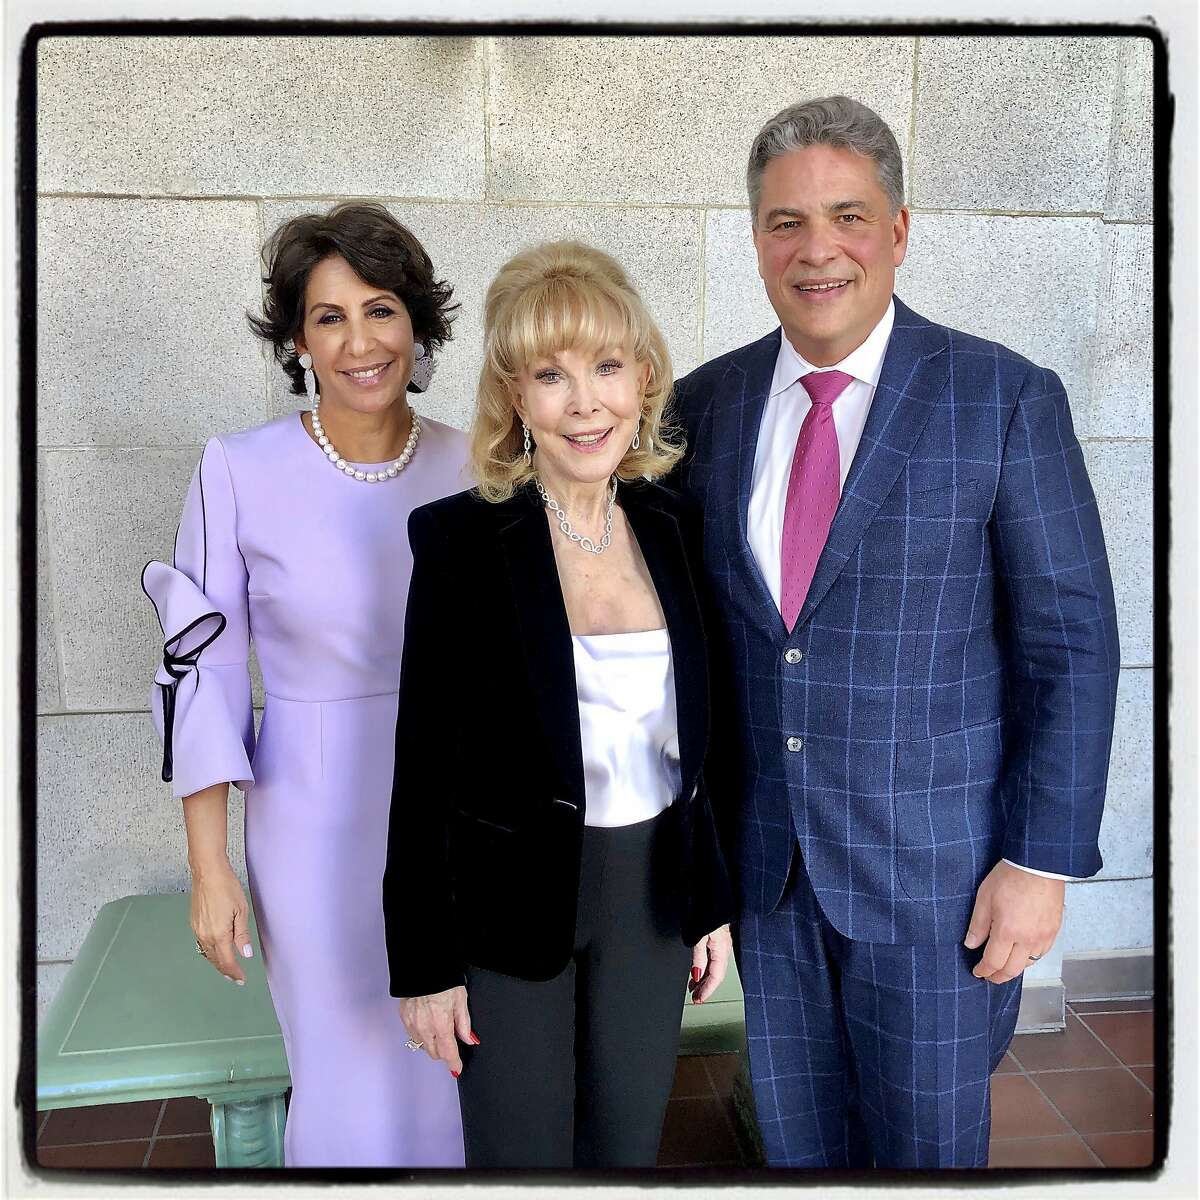 Lisa Grotts (left) with actor Barbara Eden and SF Conservatory of Music President David Stull. Feb. 14, 2020.